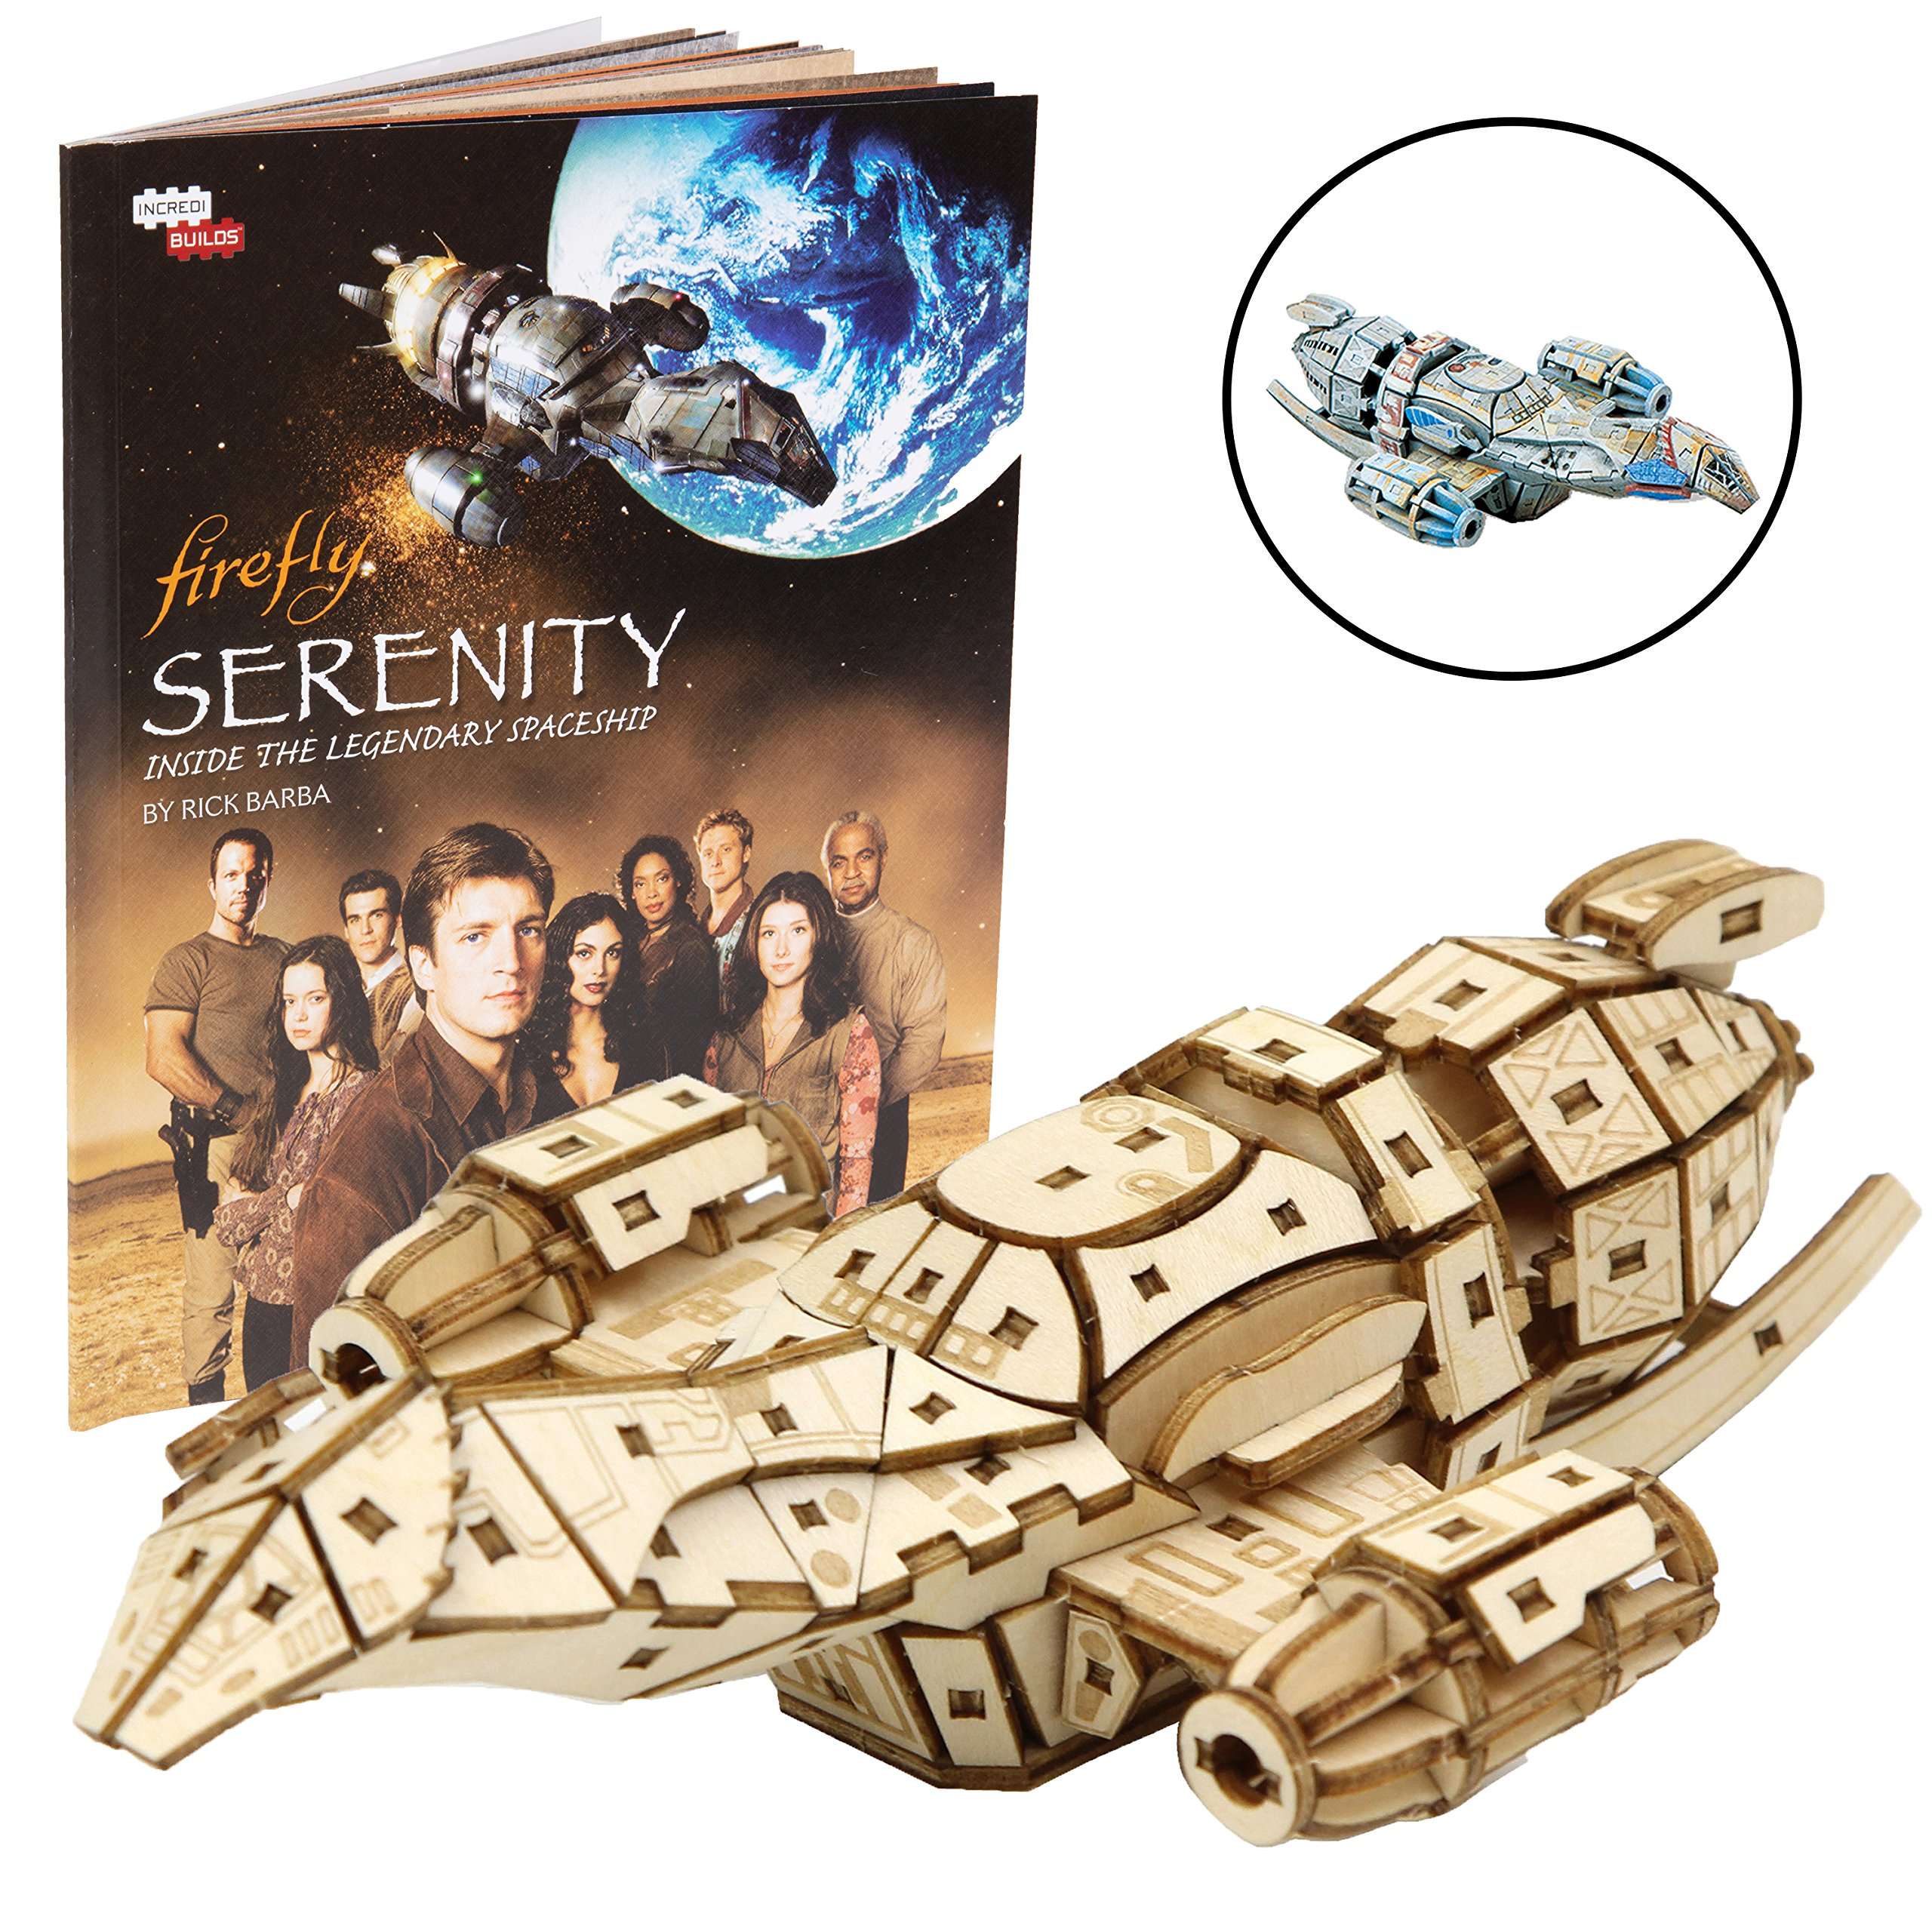 IncrediBuilds Firefly Serenity Book and 3D Wood Model Kit - Build, Paint and Collect Your Own Wooden Model - Great for Kids and Adults,12+ - 6.5'' x 4.25''